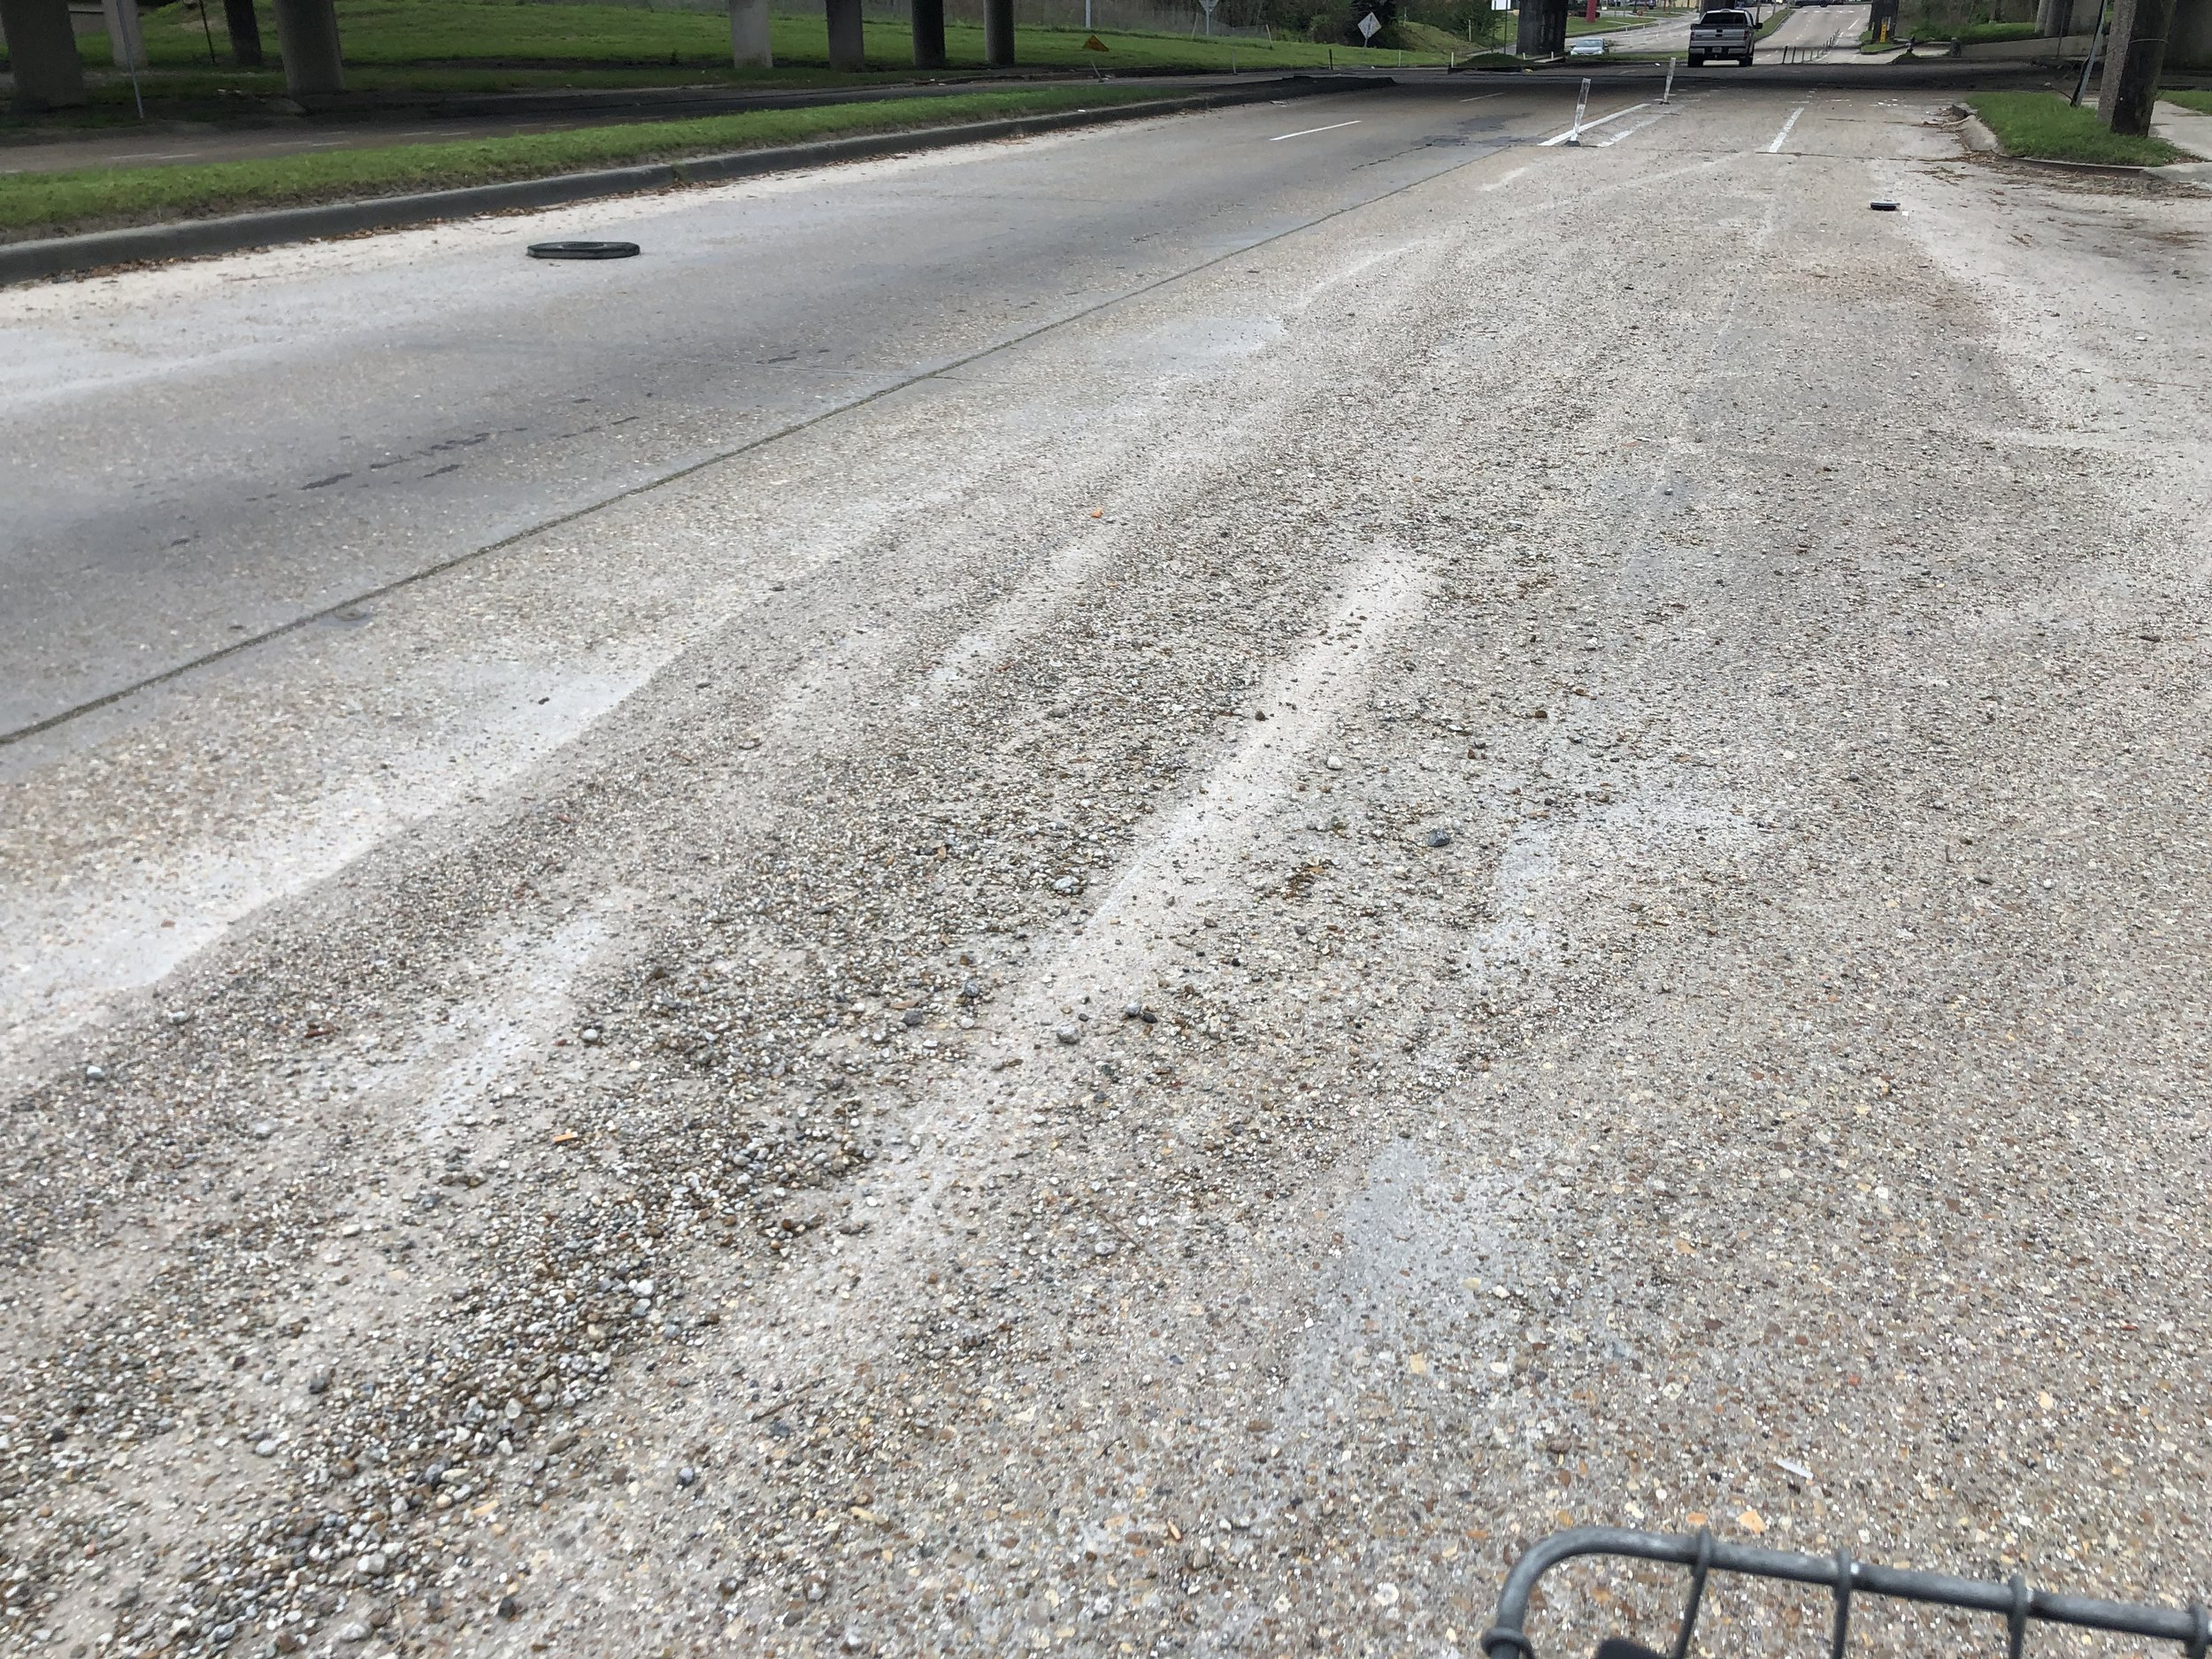 Gravel Fills the Bike Lane at Gentilly and Humanity